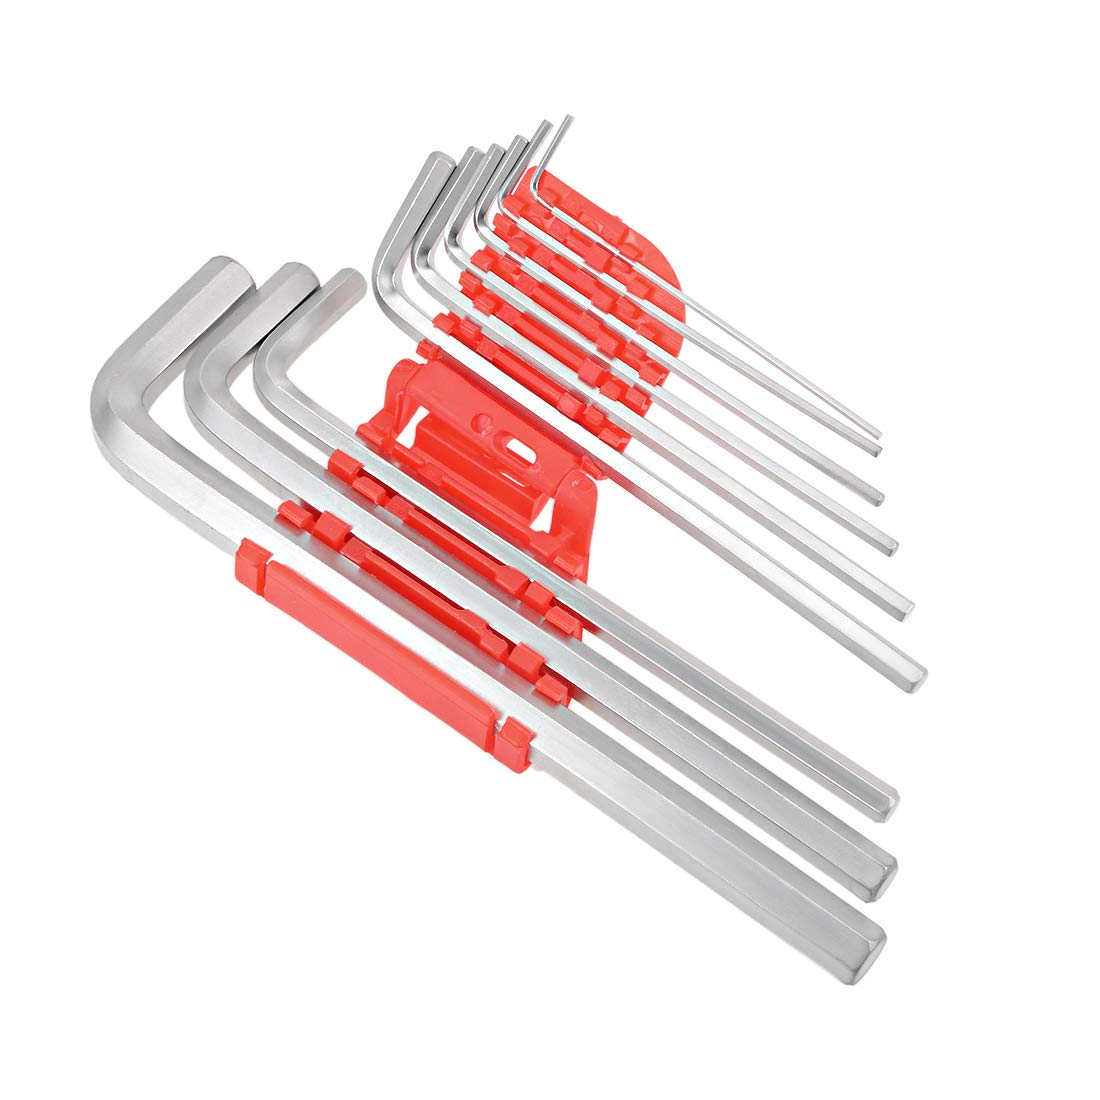 Small 9 in 1 Combination Wrench with Molded Plastic Holder uxcell Hex Key Set